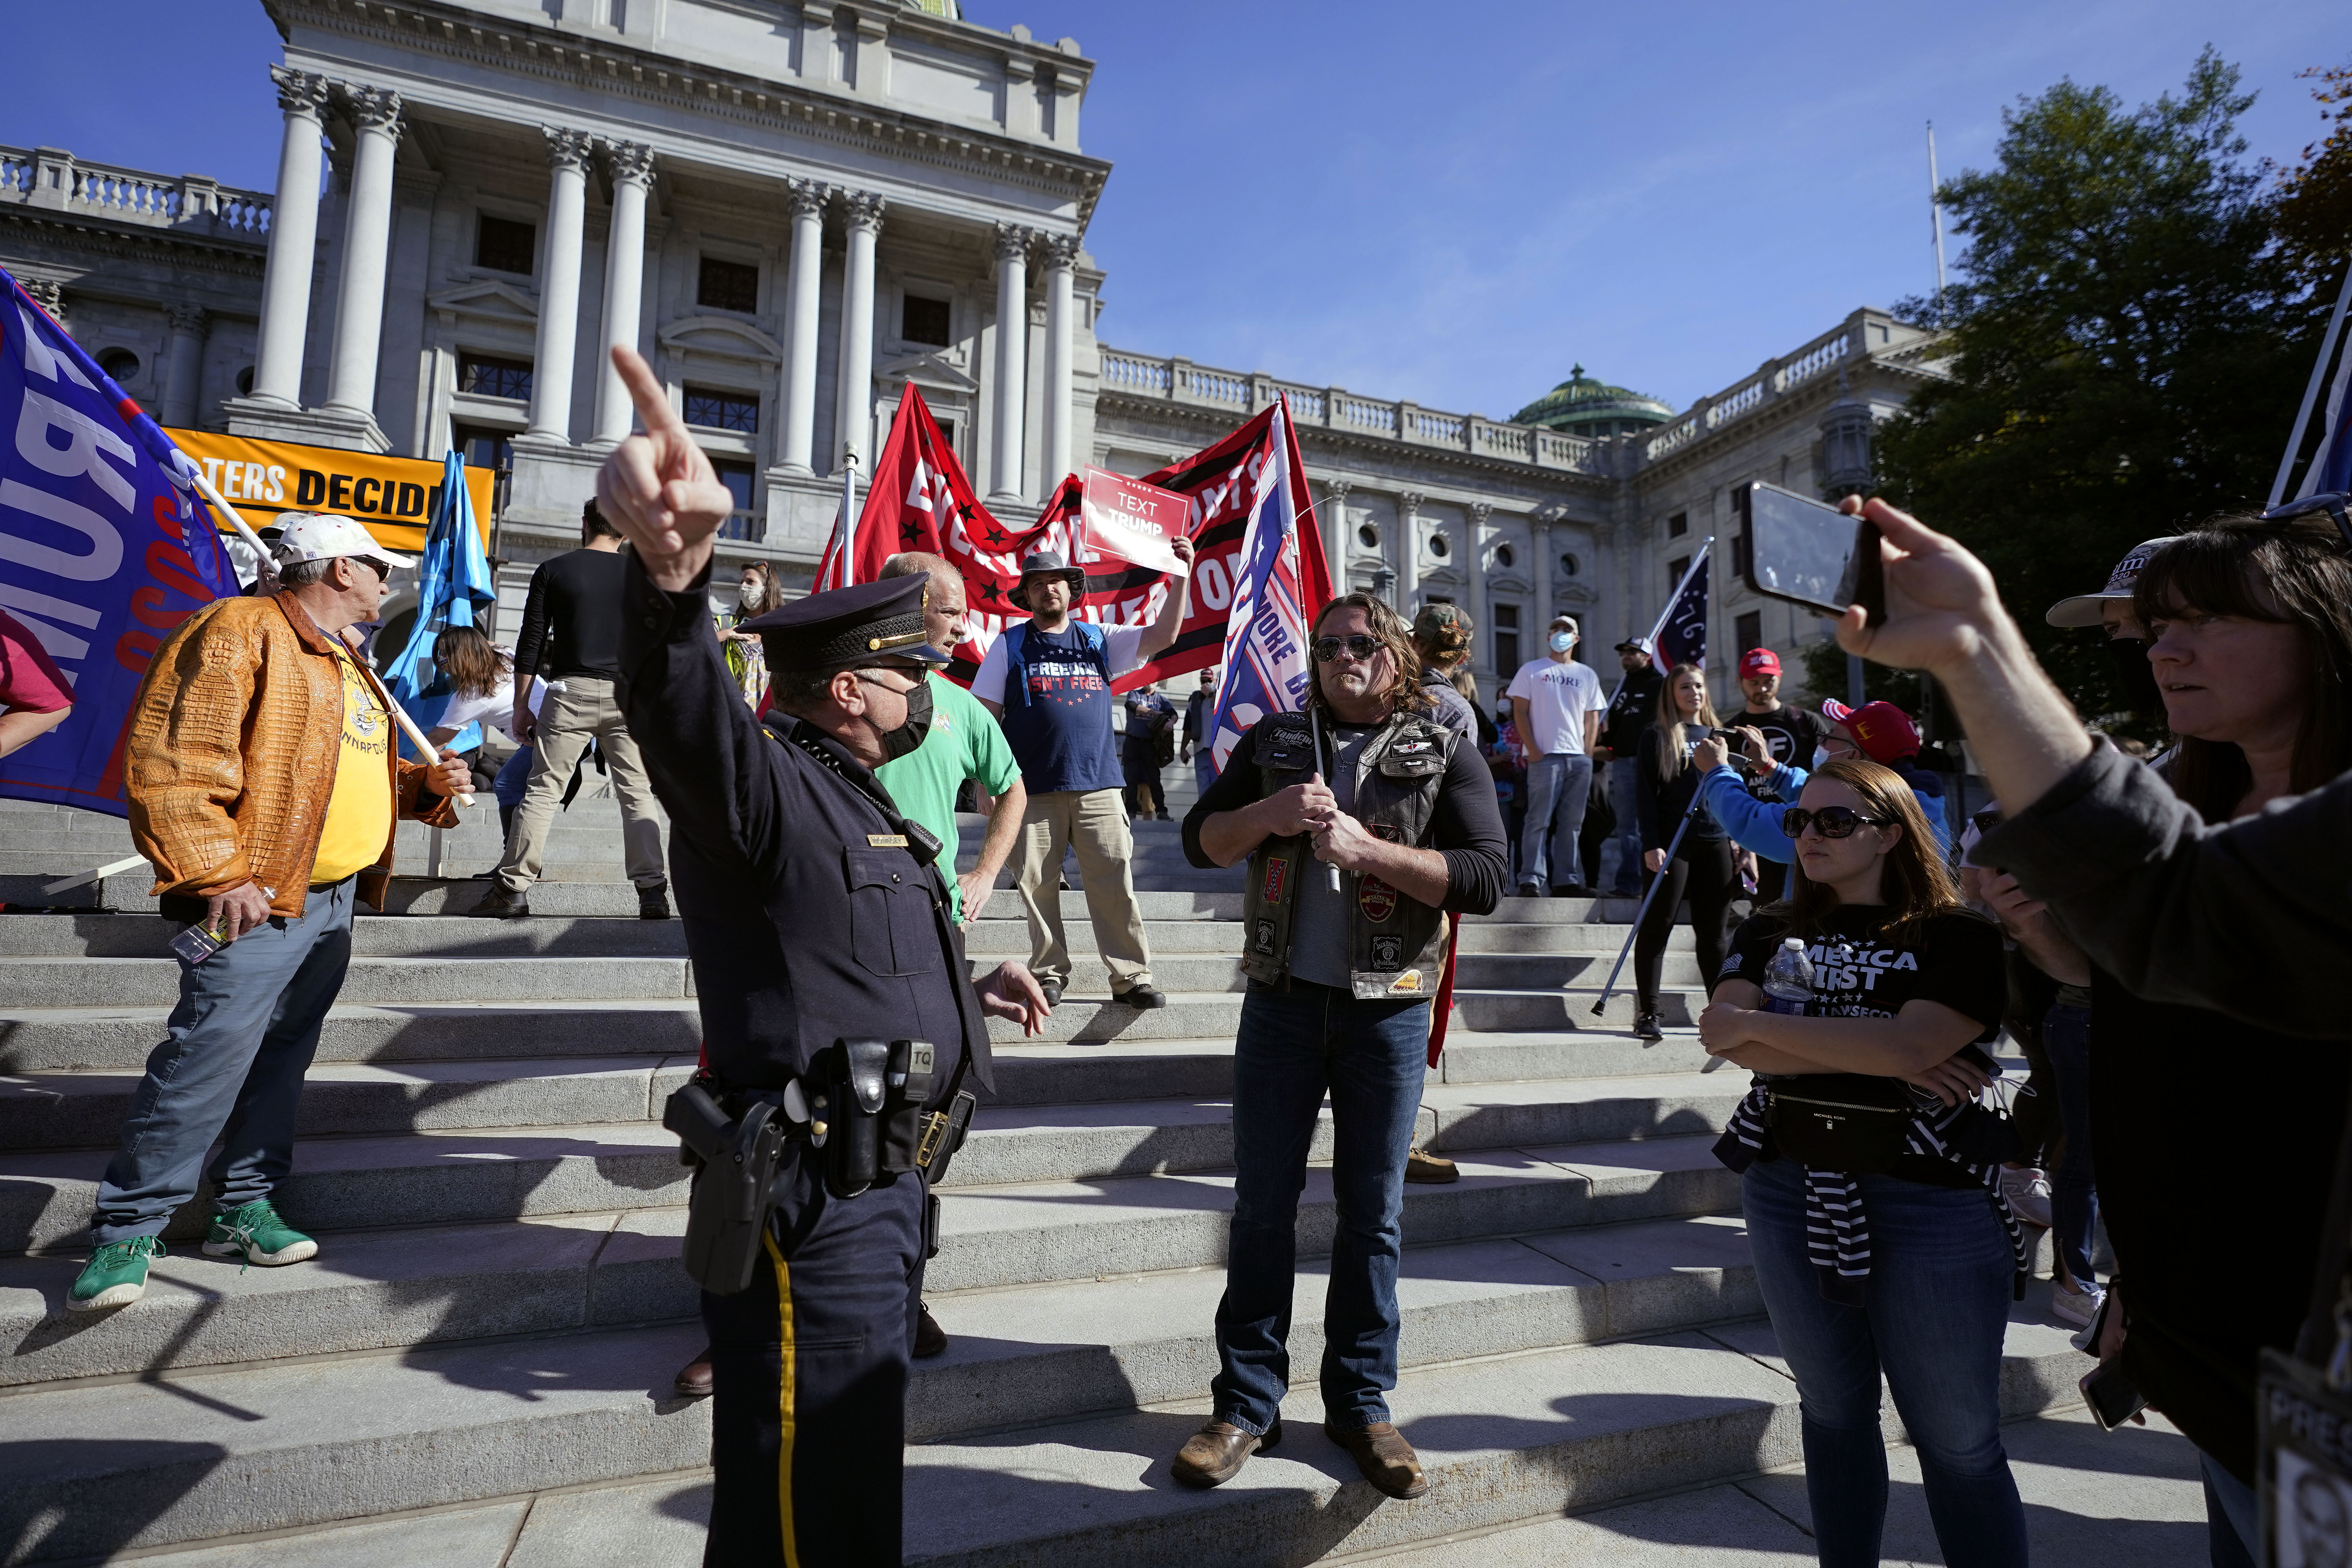 A police officer directs supporters of President Donald Trump away from the Pennsylvania State Capitol Plaza where they did not have a permit to demonstrate, Saturday, Nov. 7, 2020, in Harrisburg, Pa. A permit had been granted to an opposing group. (AP Photo/Julio Cortez)